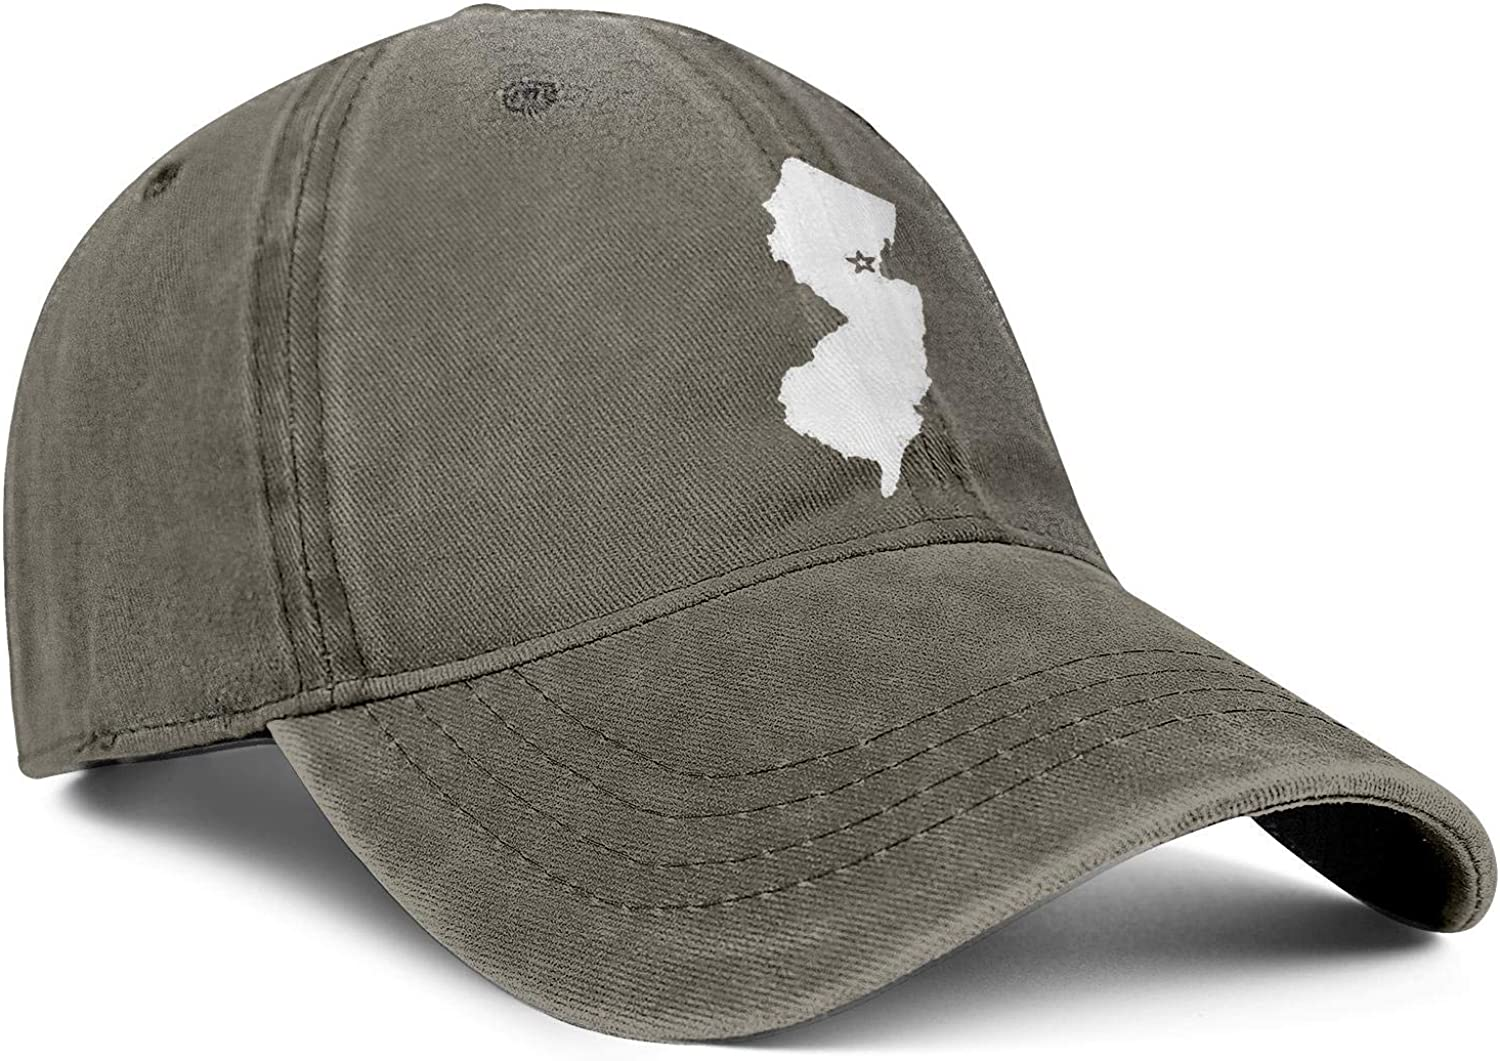 akndhys Unisex Low Wash Cloth Dad Hat Adjustable New Jersey The Great Garden State Beach Baseball Hat